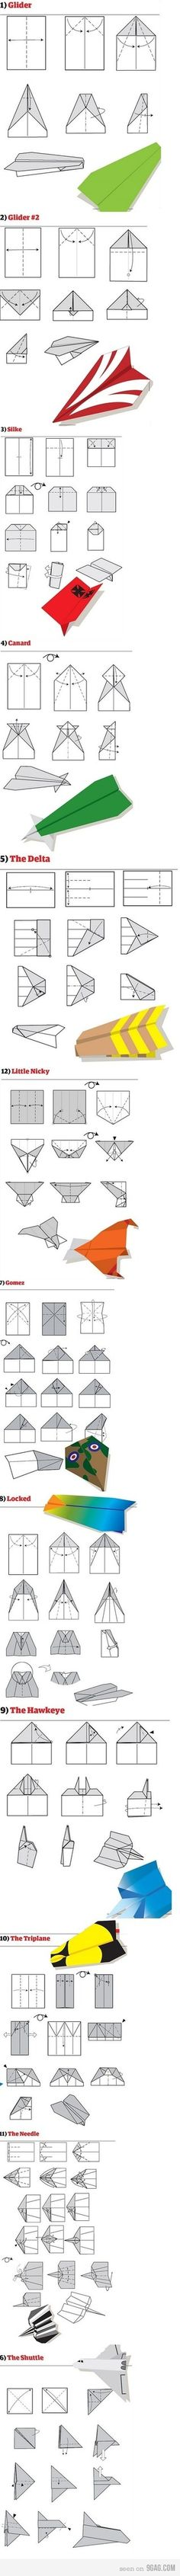 paper airplan, idea, craft, airplanes, papers, fun, origami, paper planes, kid